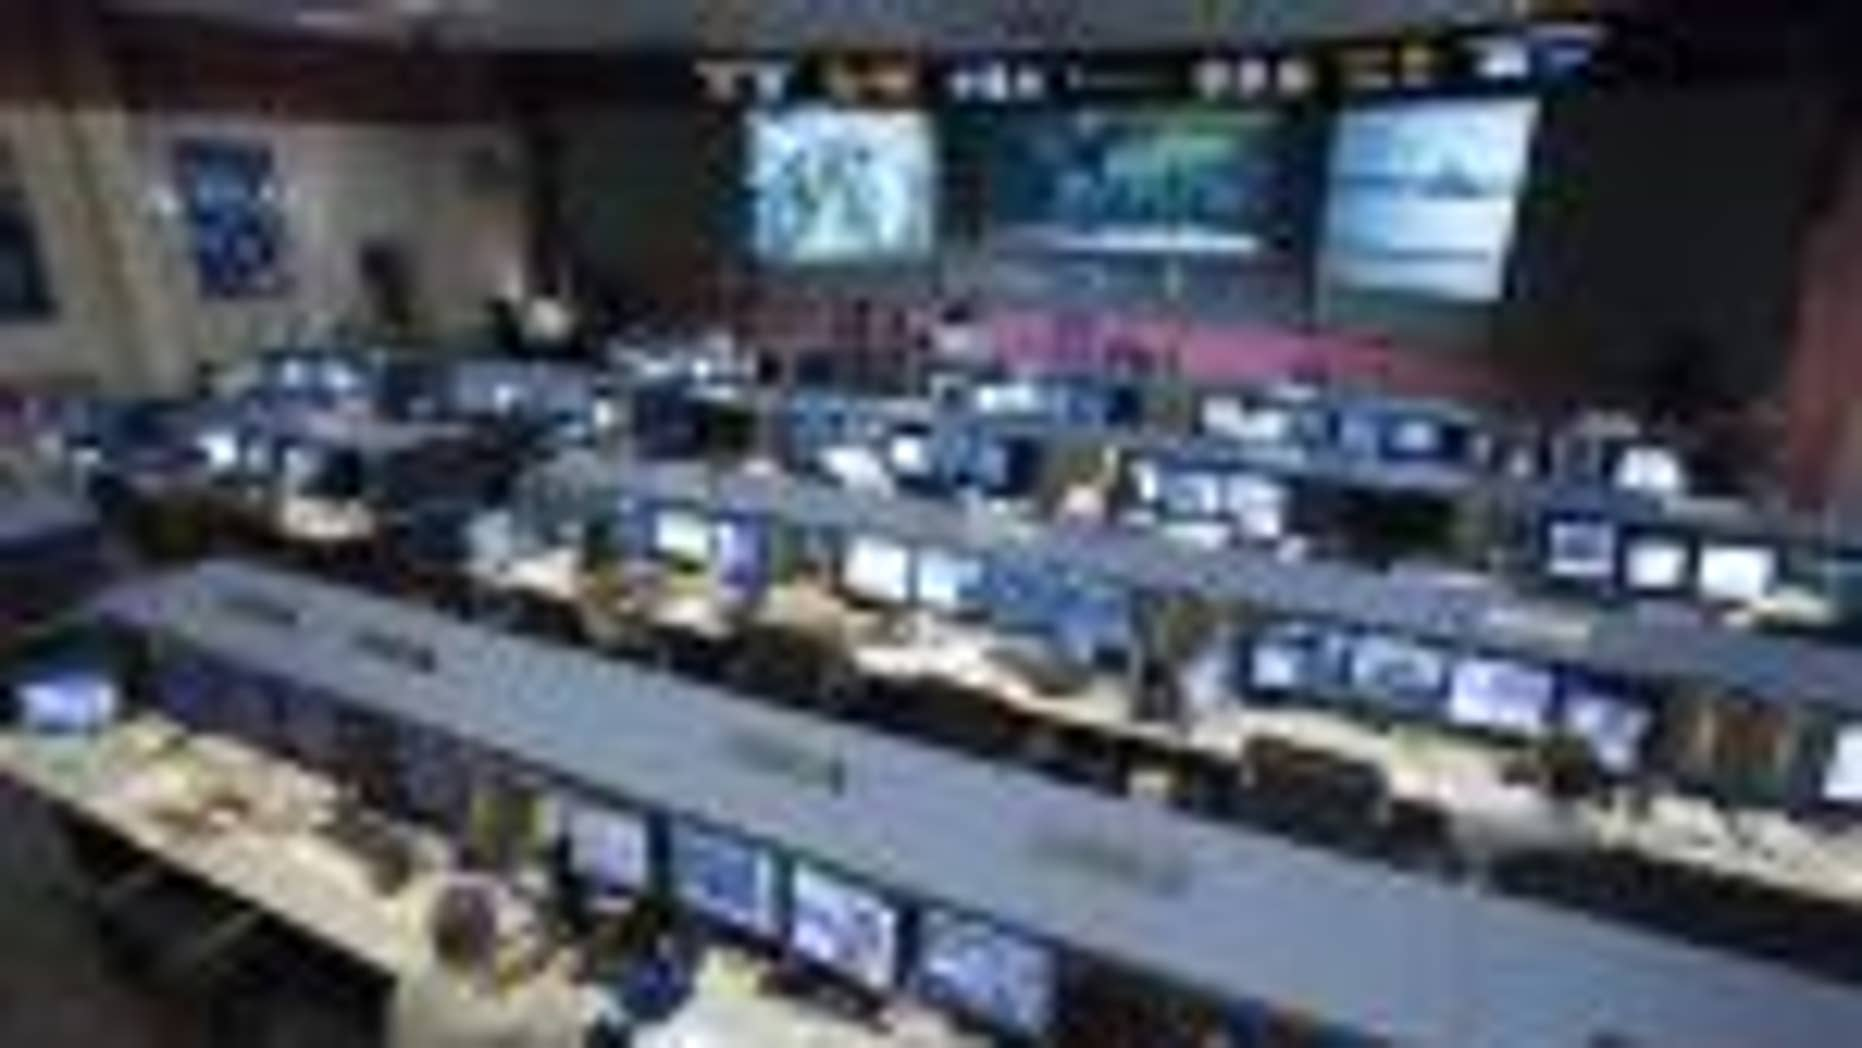 Flight Control Room 1 at Johnson Space Center in Houston, TX (AP file photo)